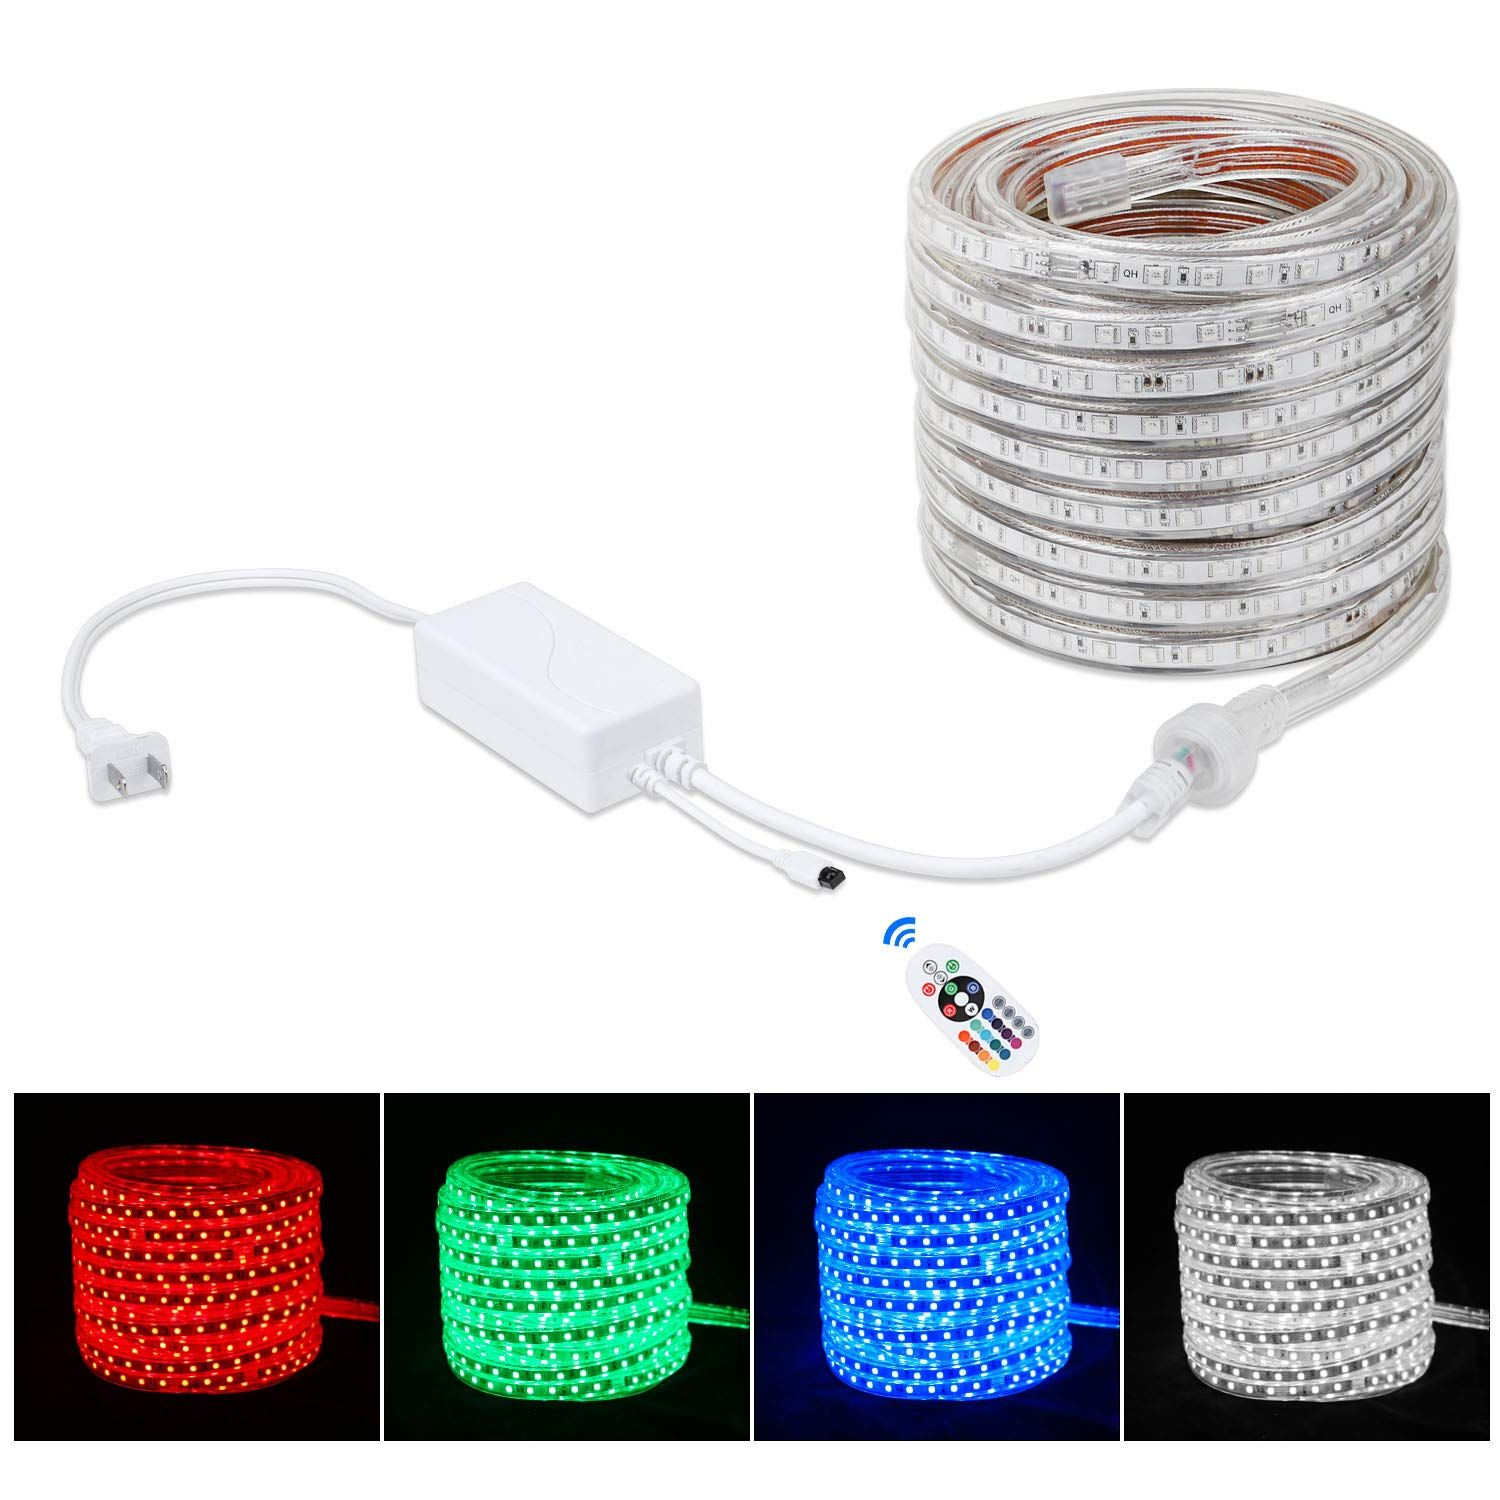 Brillihood Flexible Led Rgb Rope Light Strip Multi Color Changing Smd 5050 Leds 110 120v Ac Dimmable Waterproof Strip Lighting Led Rope Lights Rope Light